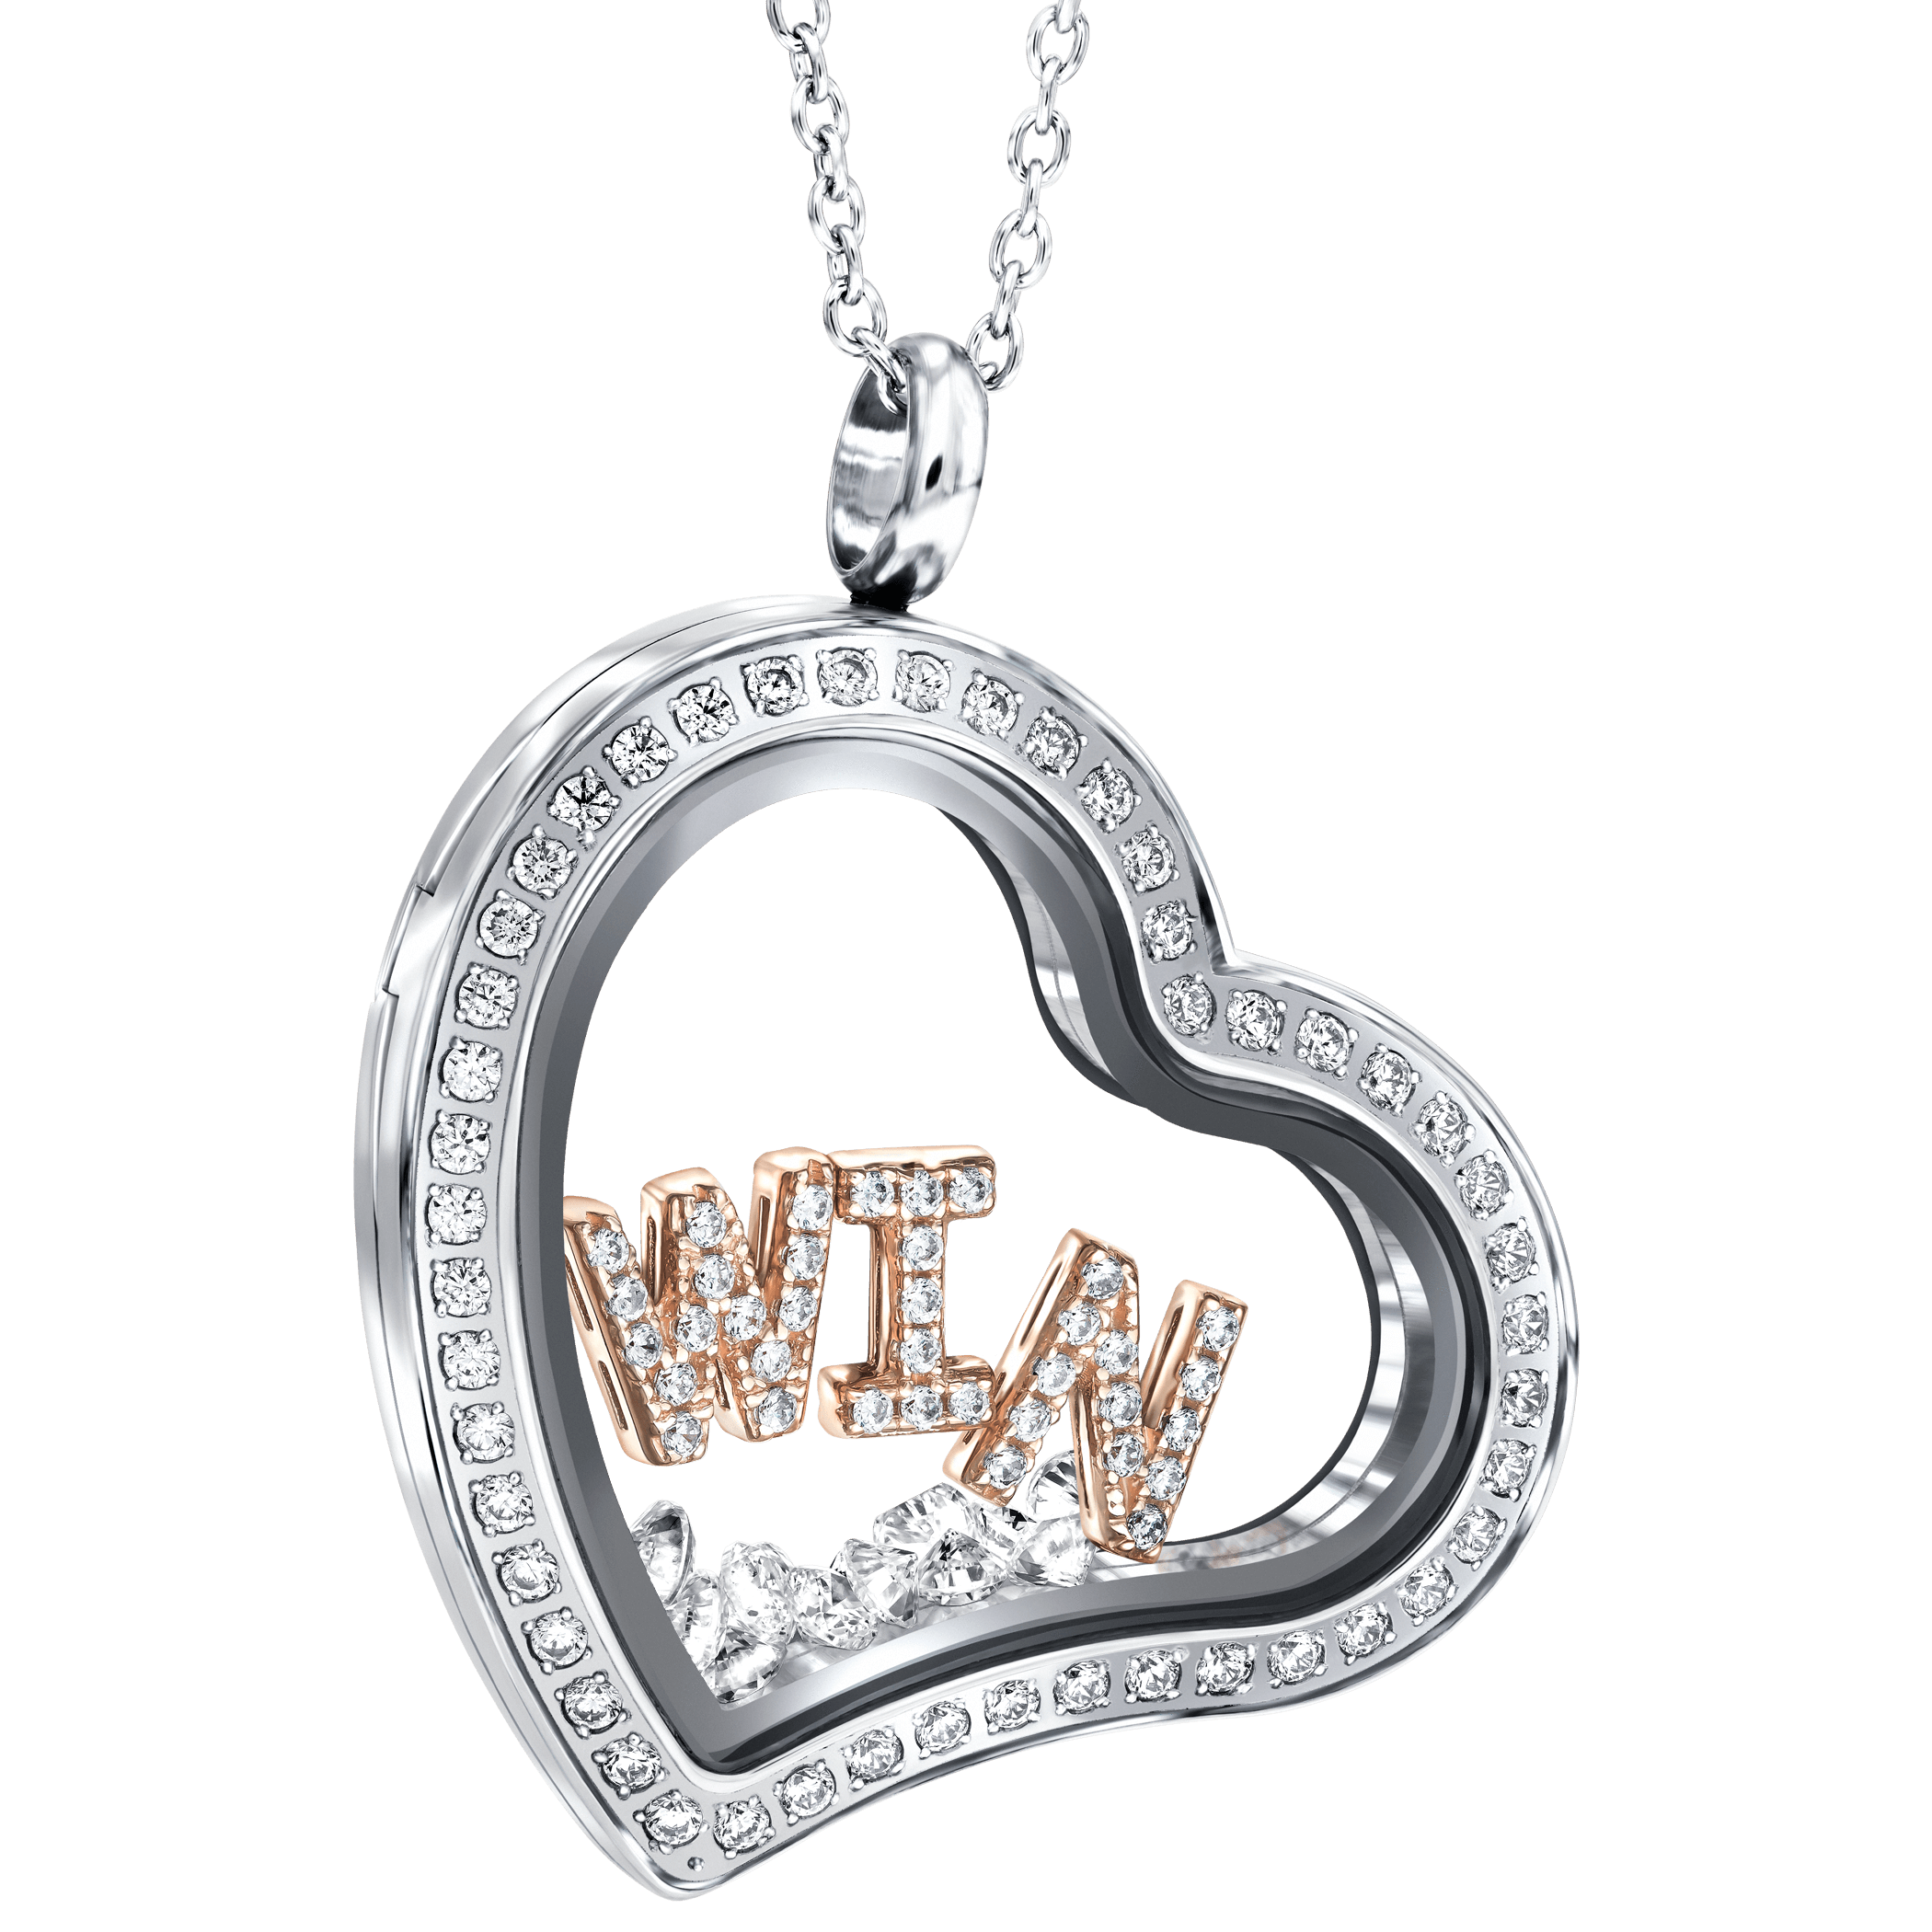 Drawing at getdrawings com. Necklace clipart heart shaped locket